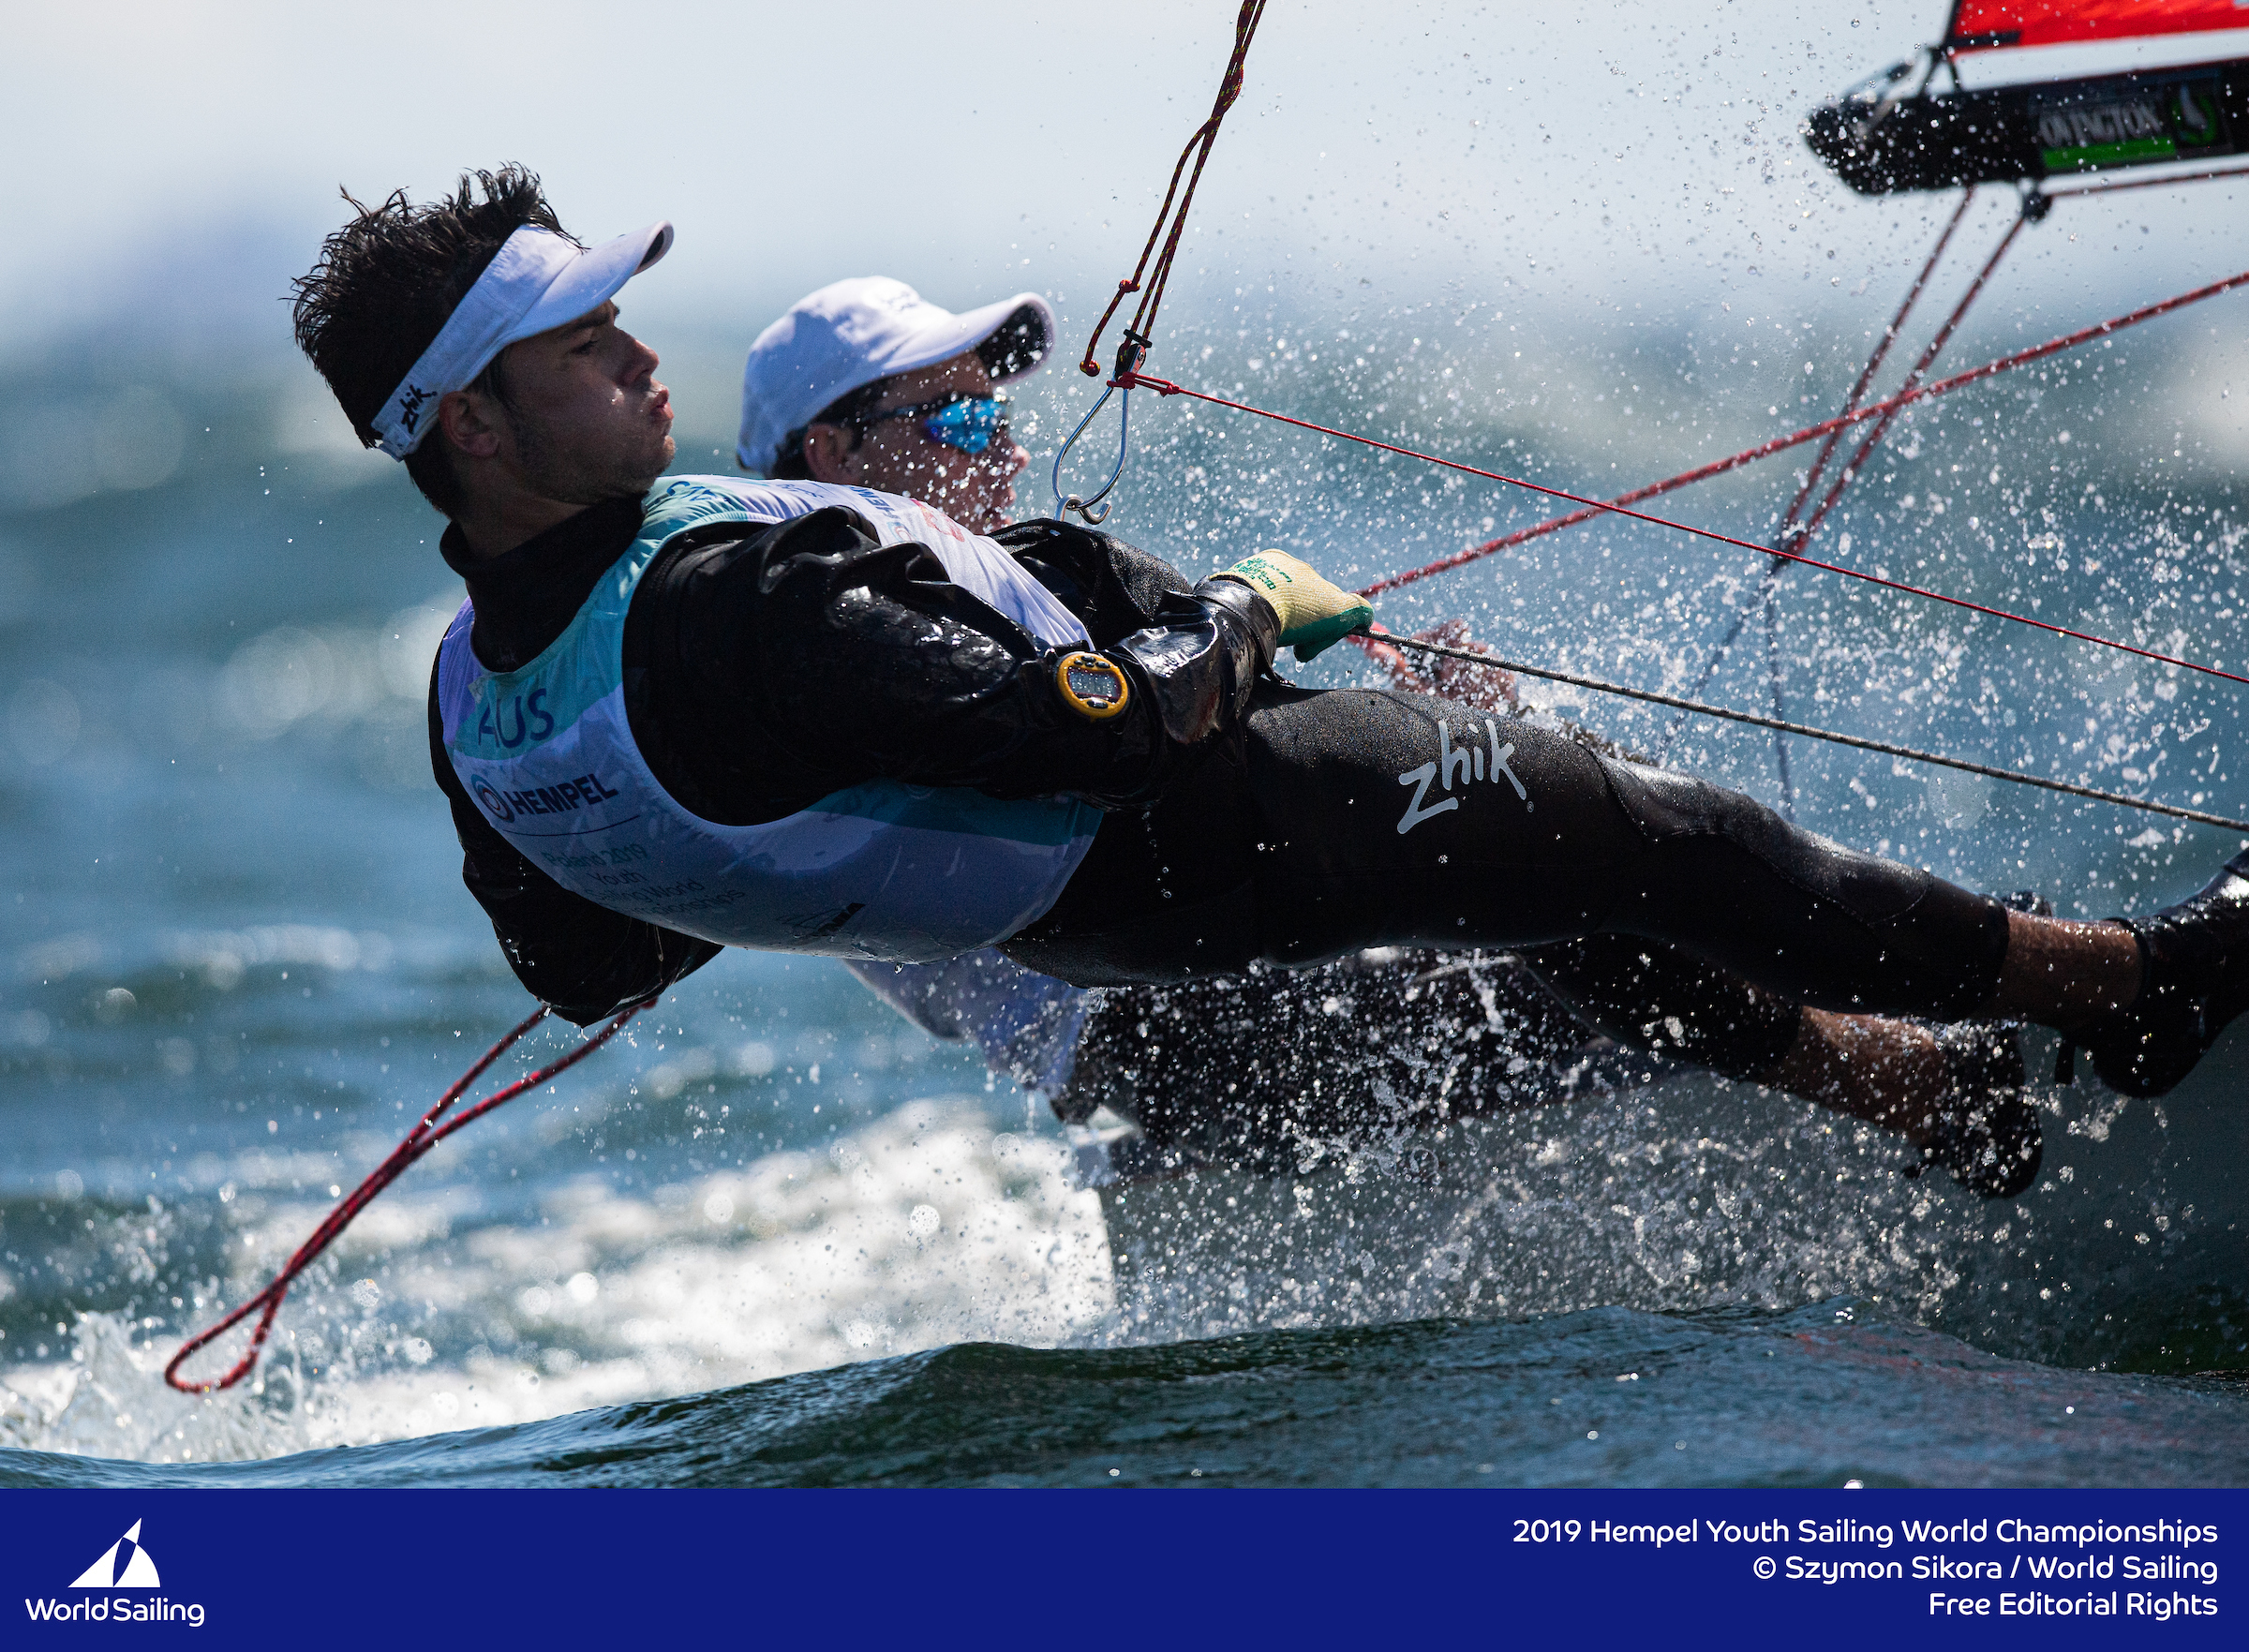 Archie Cropley and Max Paul took Bronze - Szymon-Sikora-pic